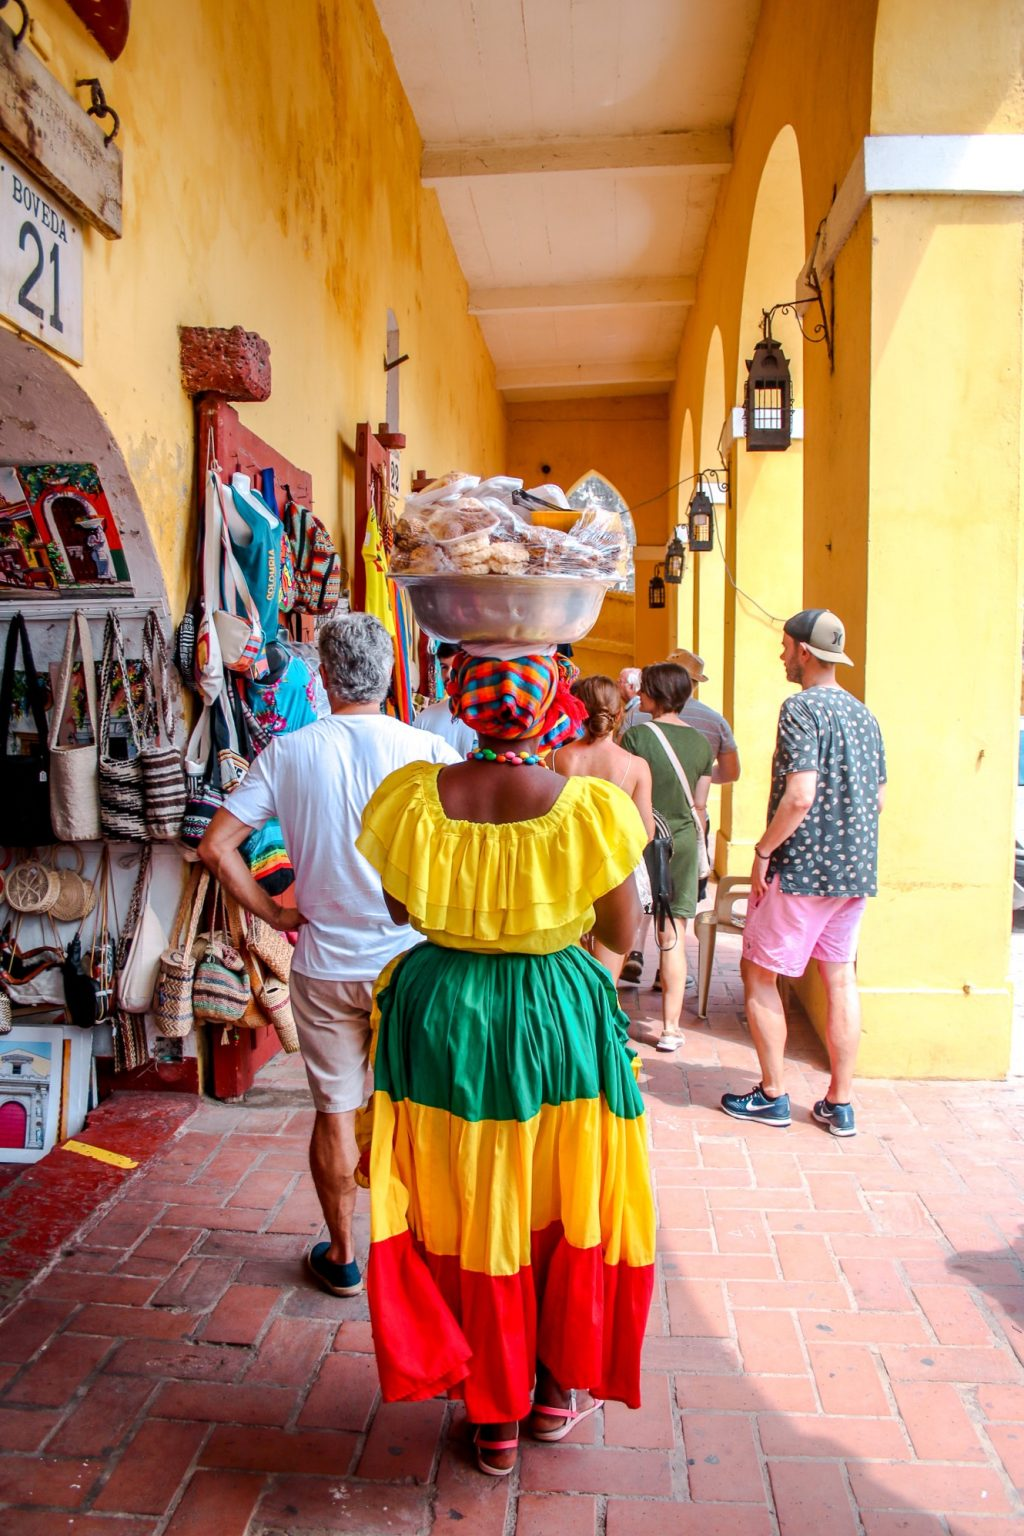 Things To Do In Cartagena: The Ultimate Guide To The City